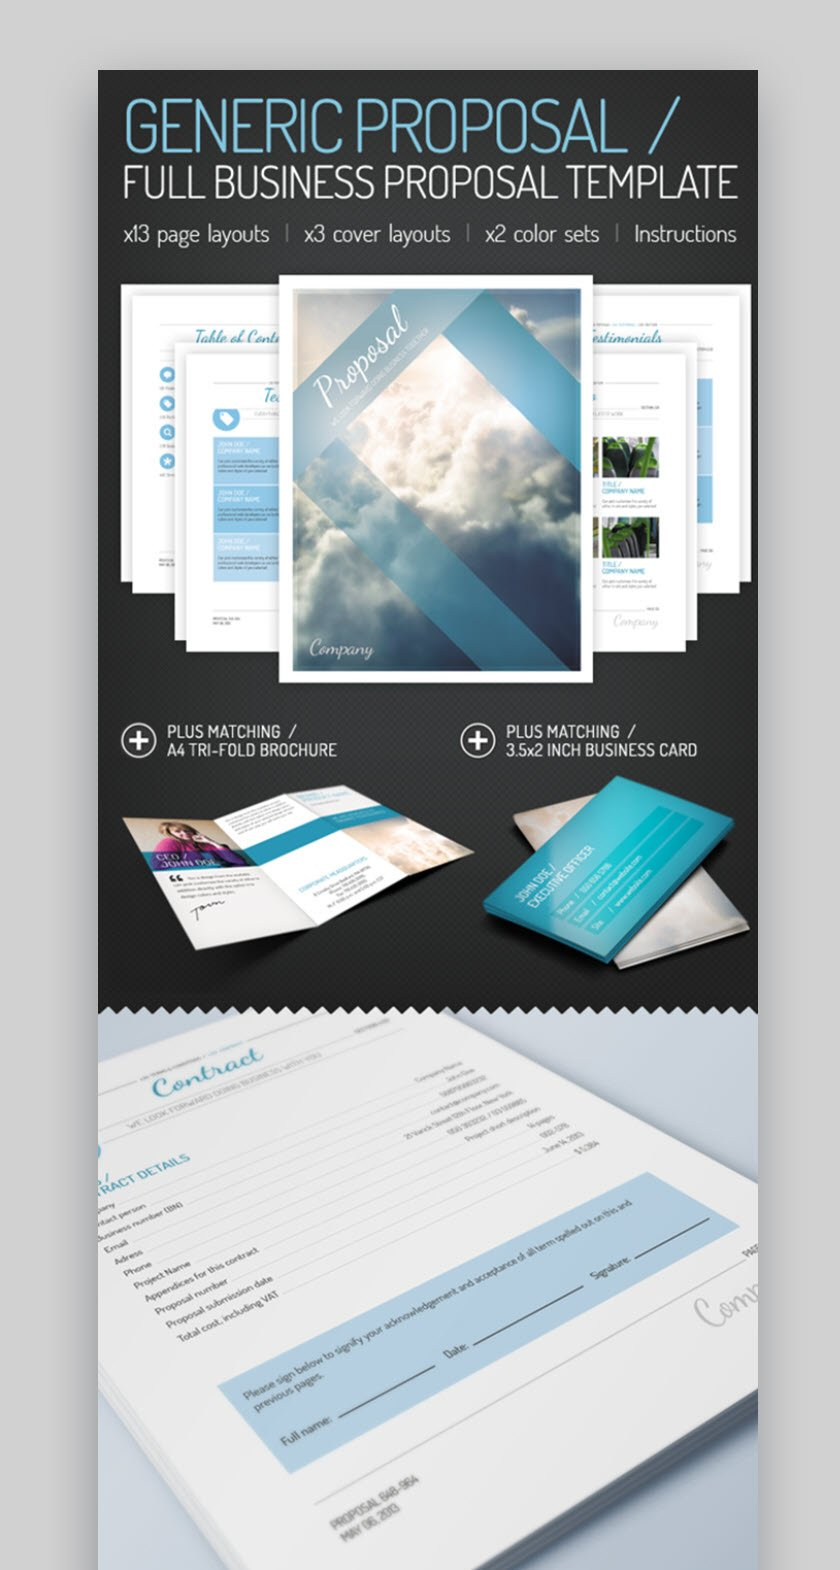 Full business proposal template